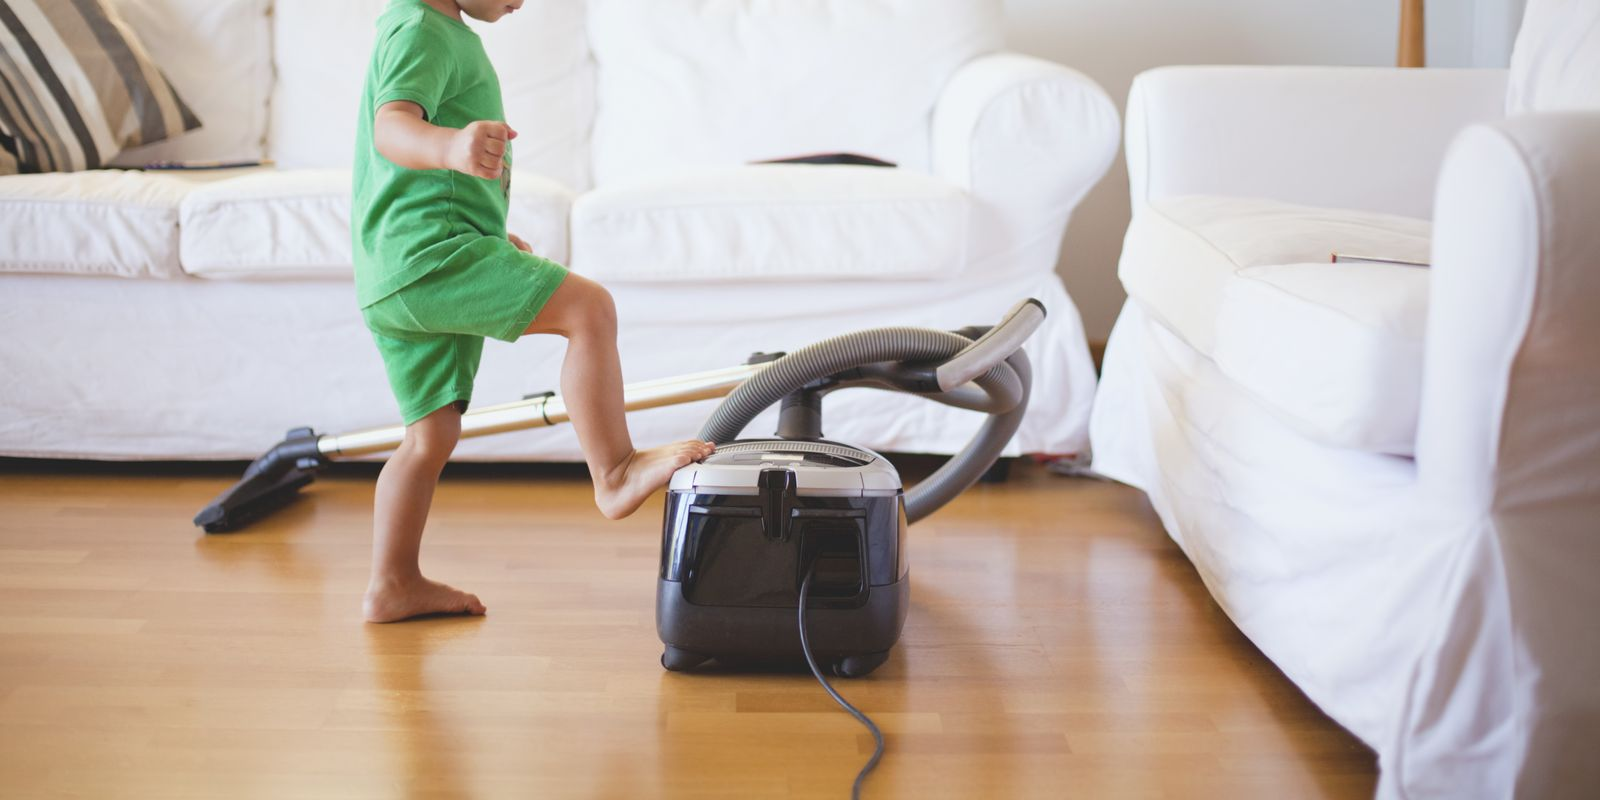 choosing-budget-friendly-vacuum-cleaners-guide